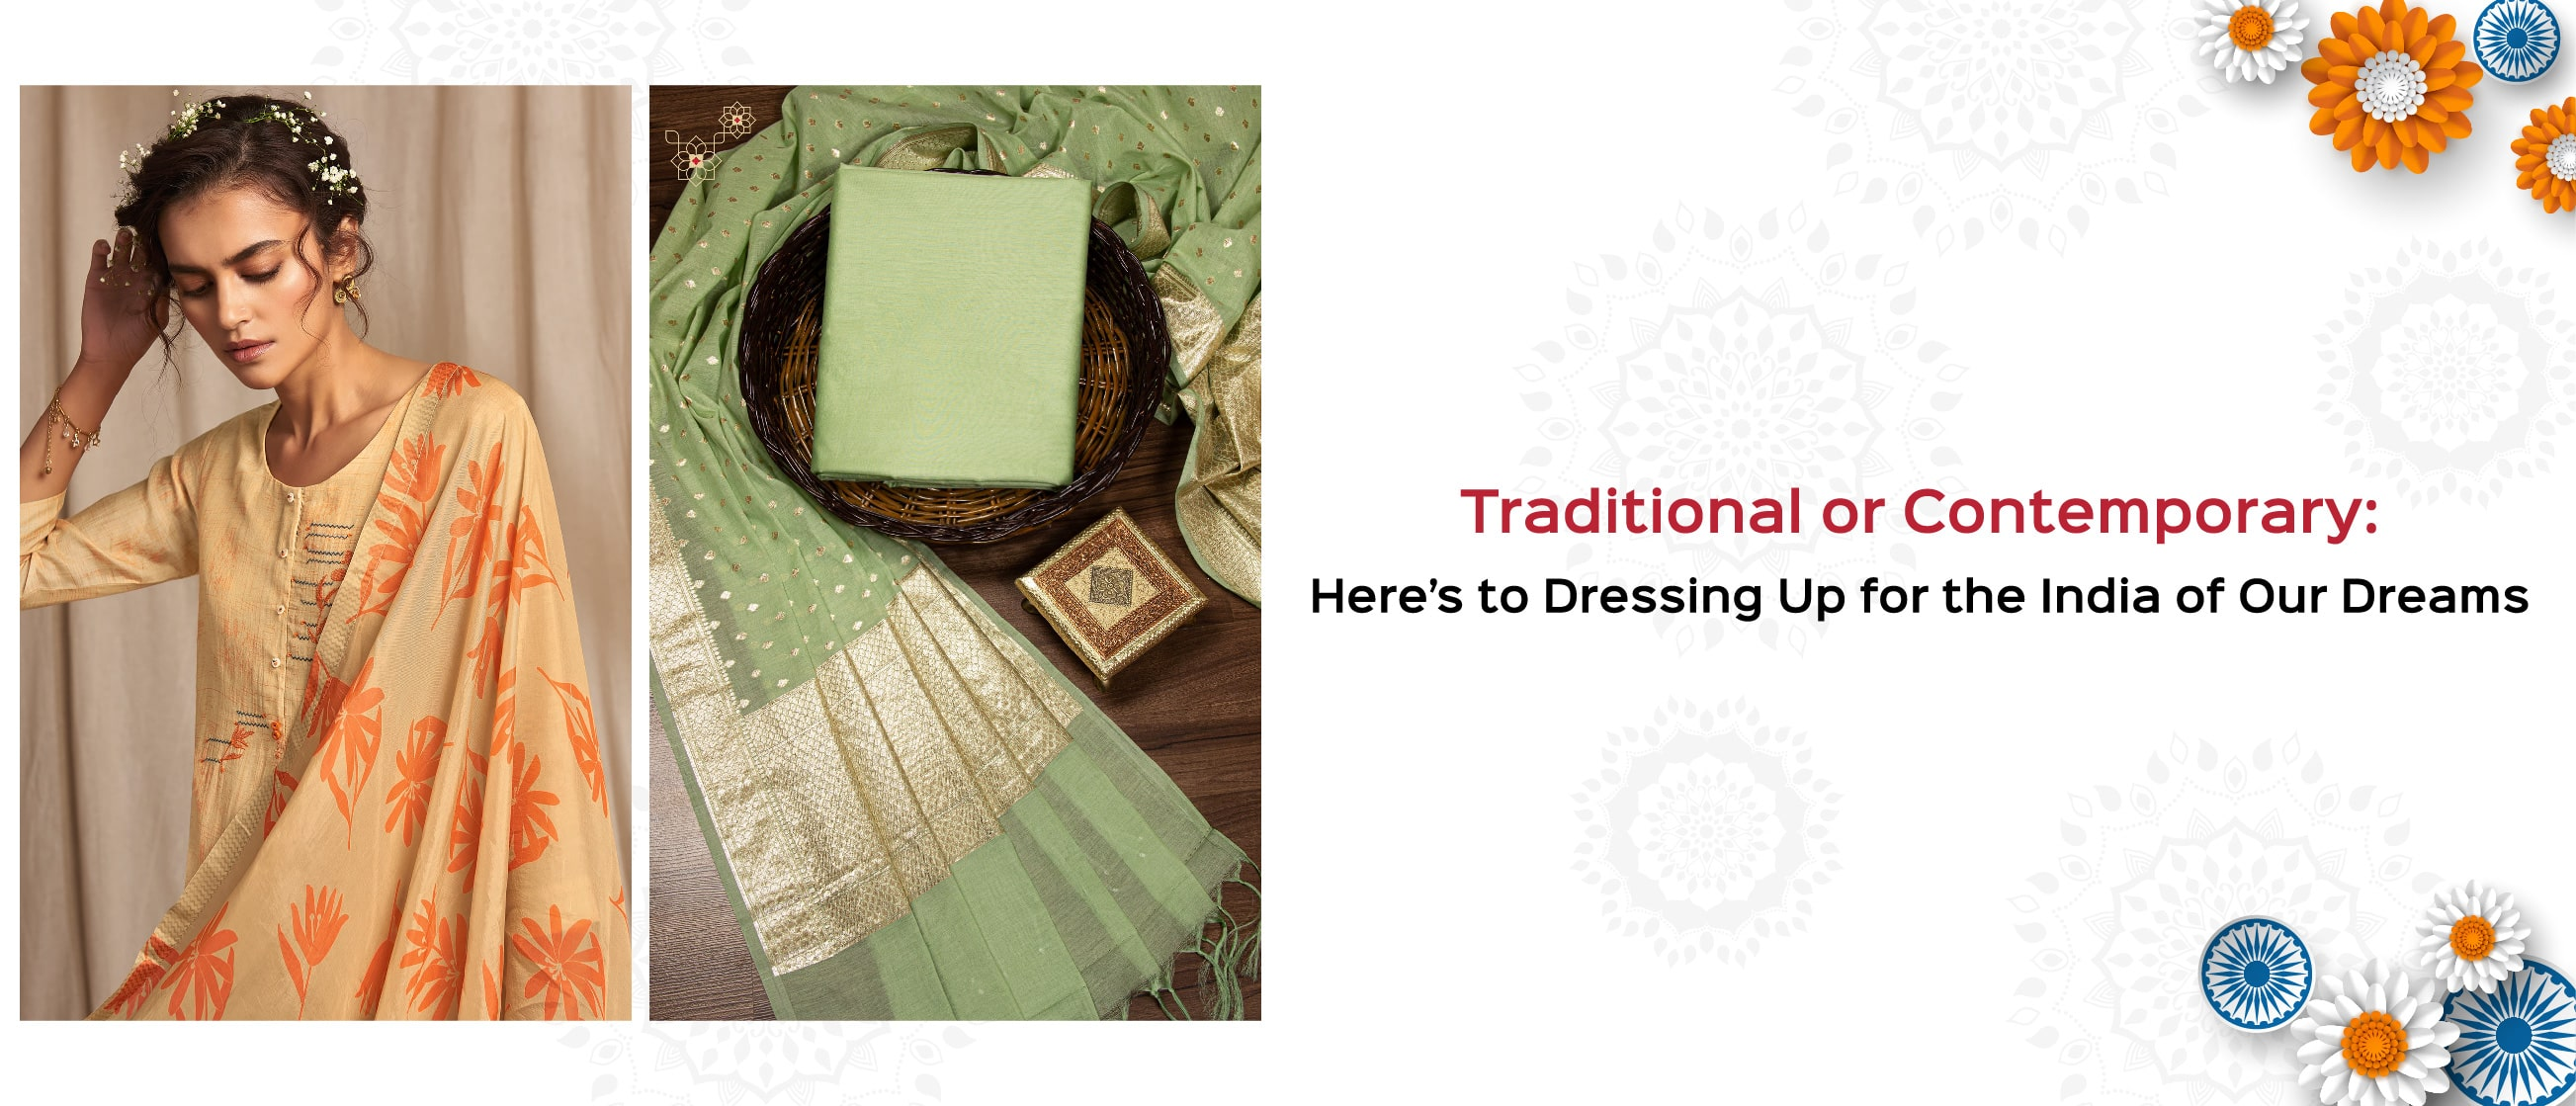 Traditional or Contemporary: Here's to Dressing Up for the India of Our Dreams